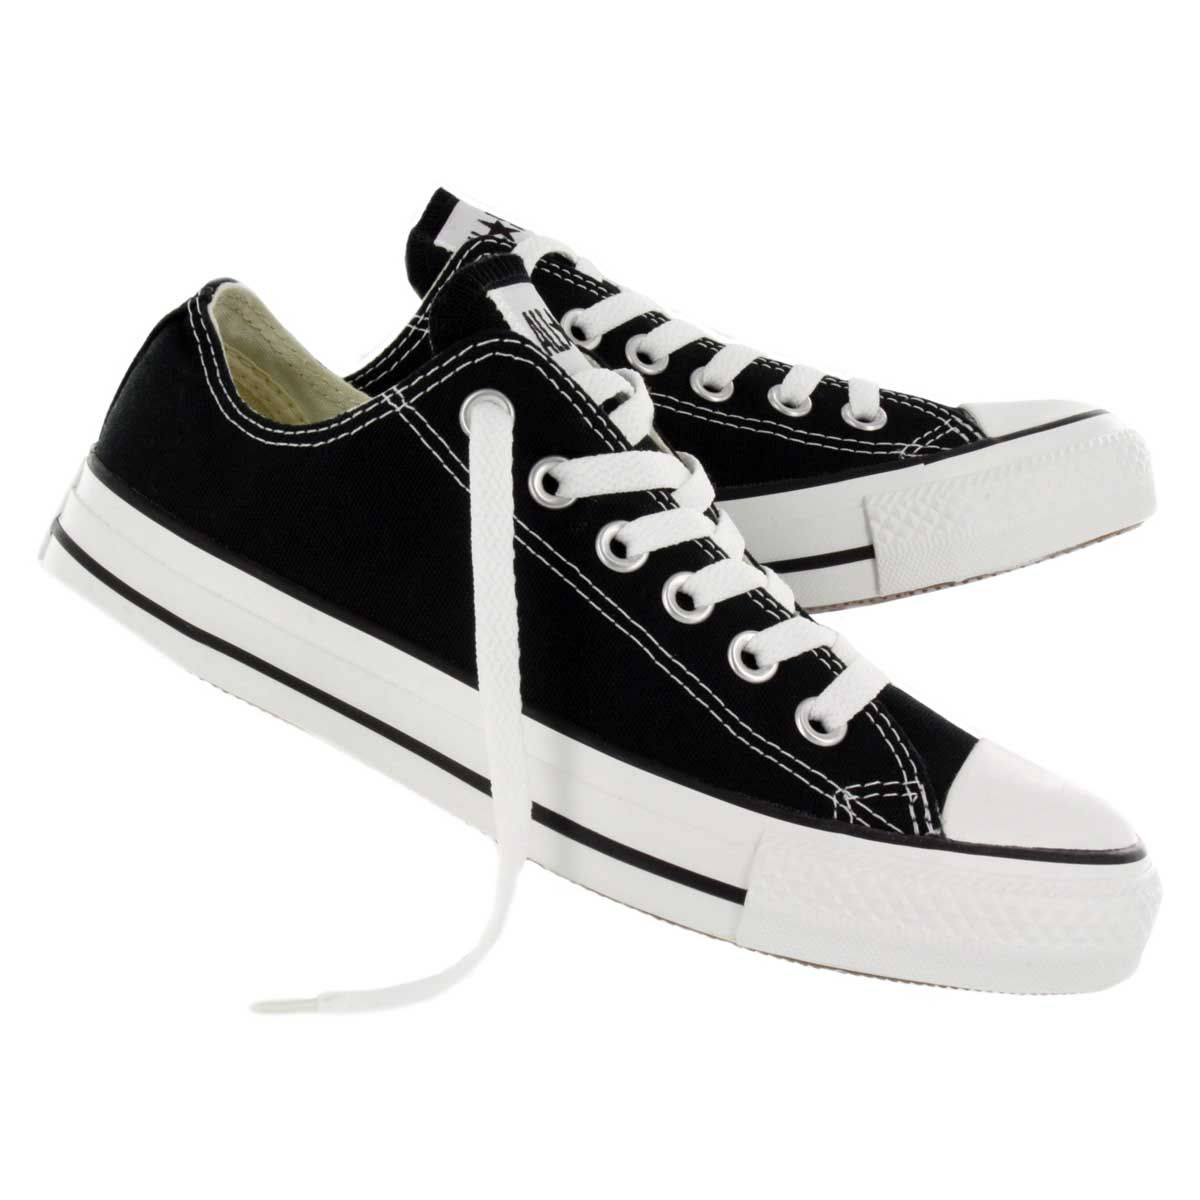 converse shoes for girls black